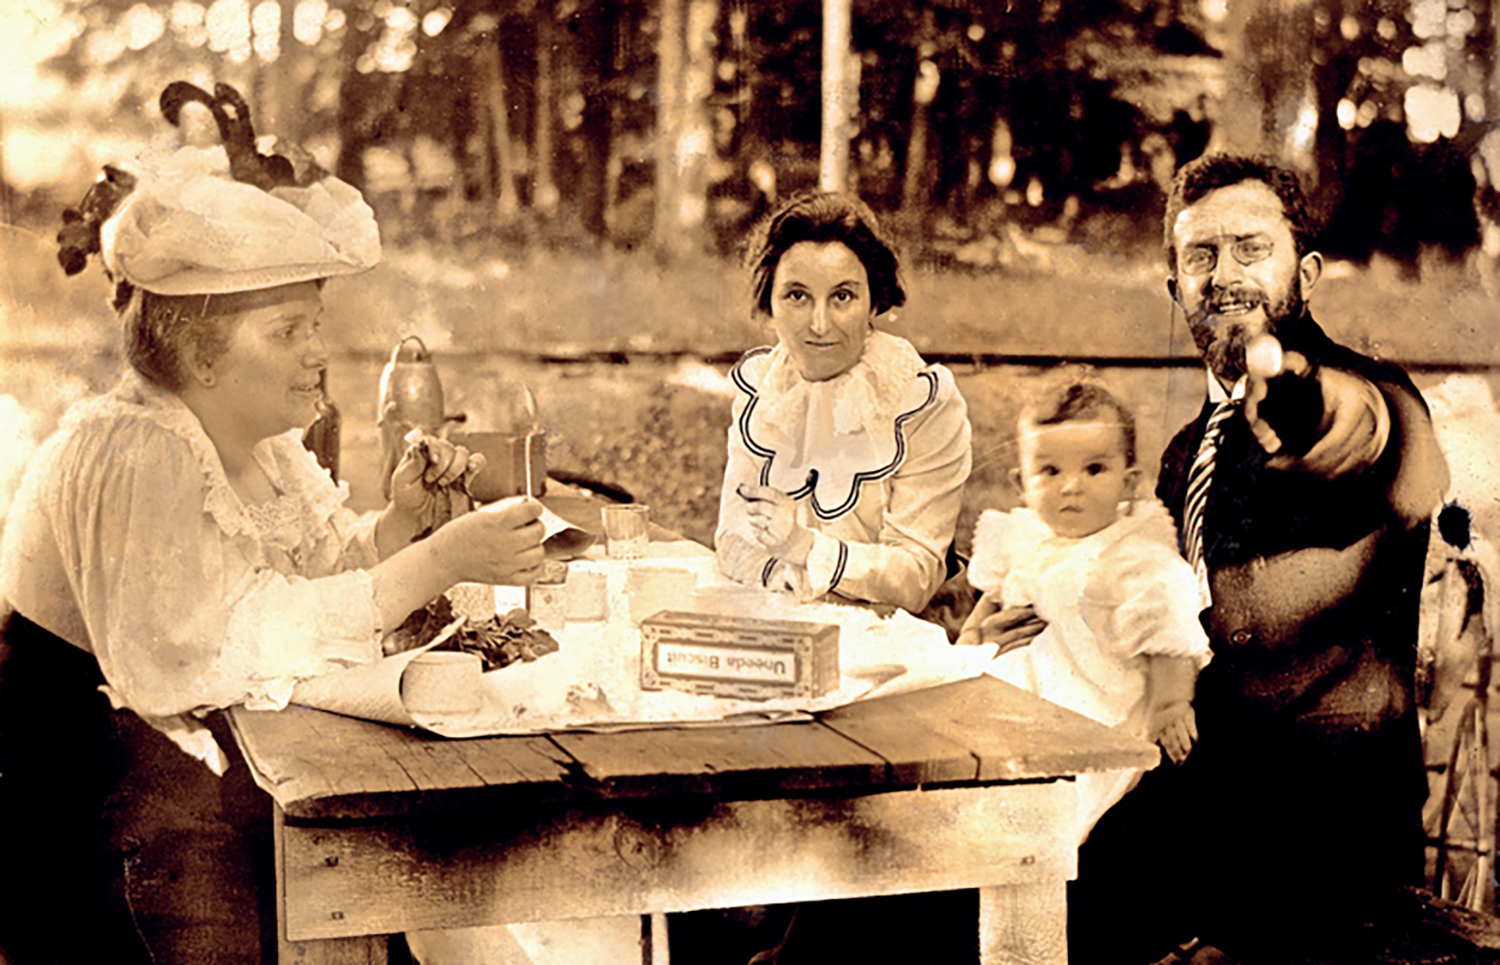 Figure 4: This photograph, taken in 1899, shows residents from the newly formed New Church community in Huntingdon Valley picnicking in Alnwick Grove park (Camille and Marie Vinet, their son Pierre, and Lulu Xandry Odhner). Photo: Academy of the New Church Archives.